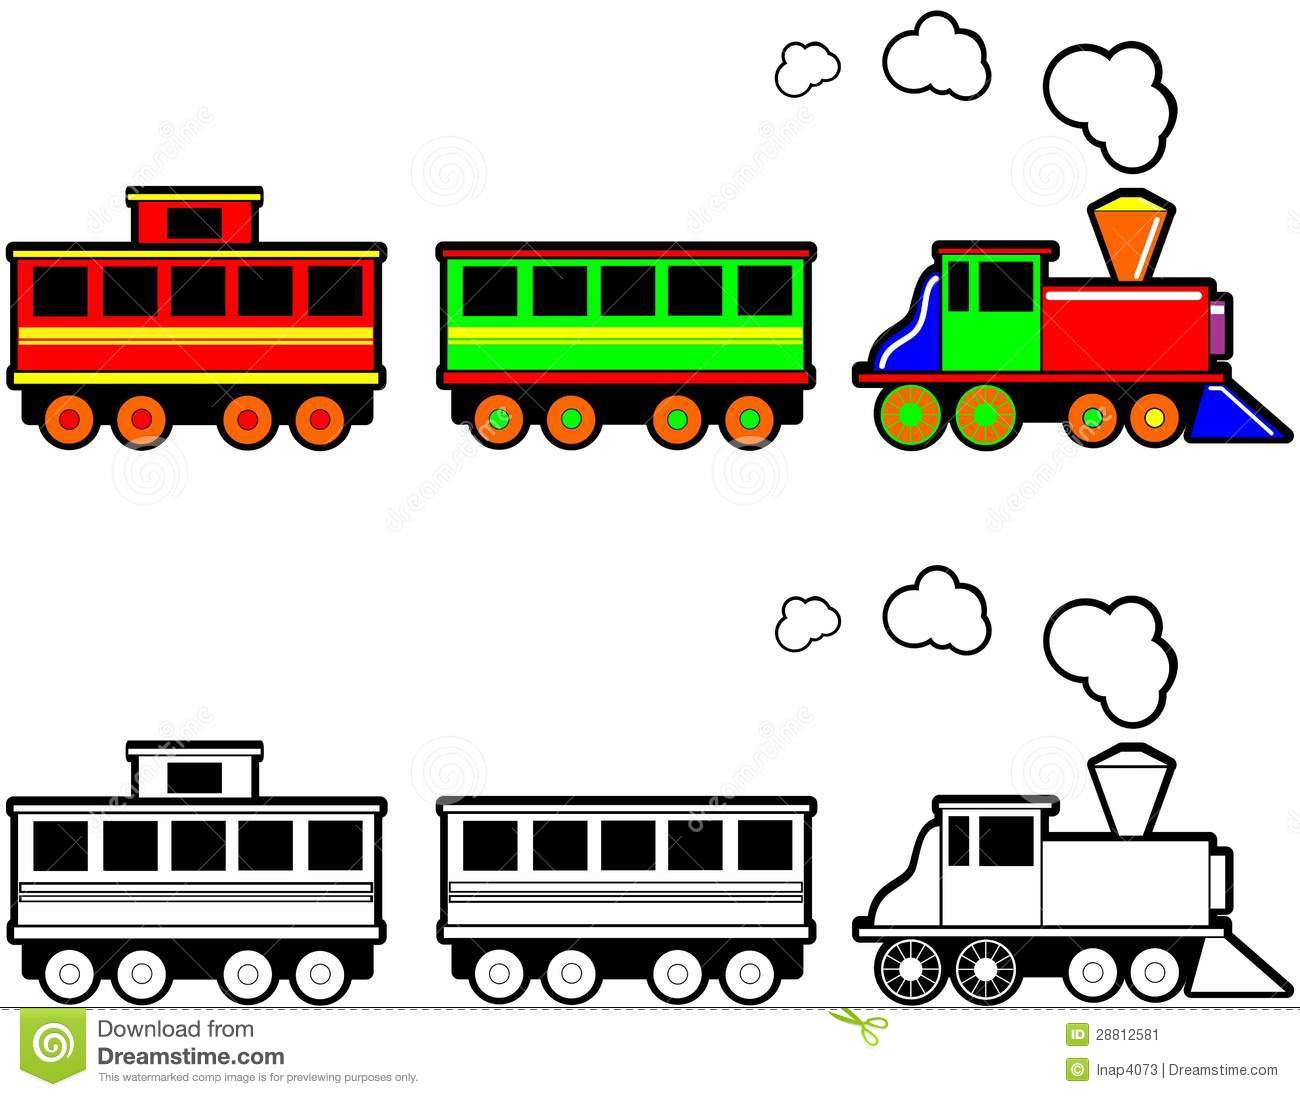 Toy Train Stock Image   Image  28812581